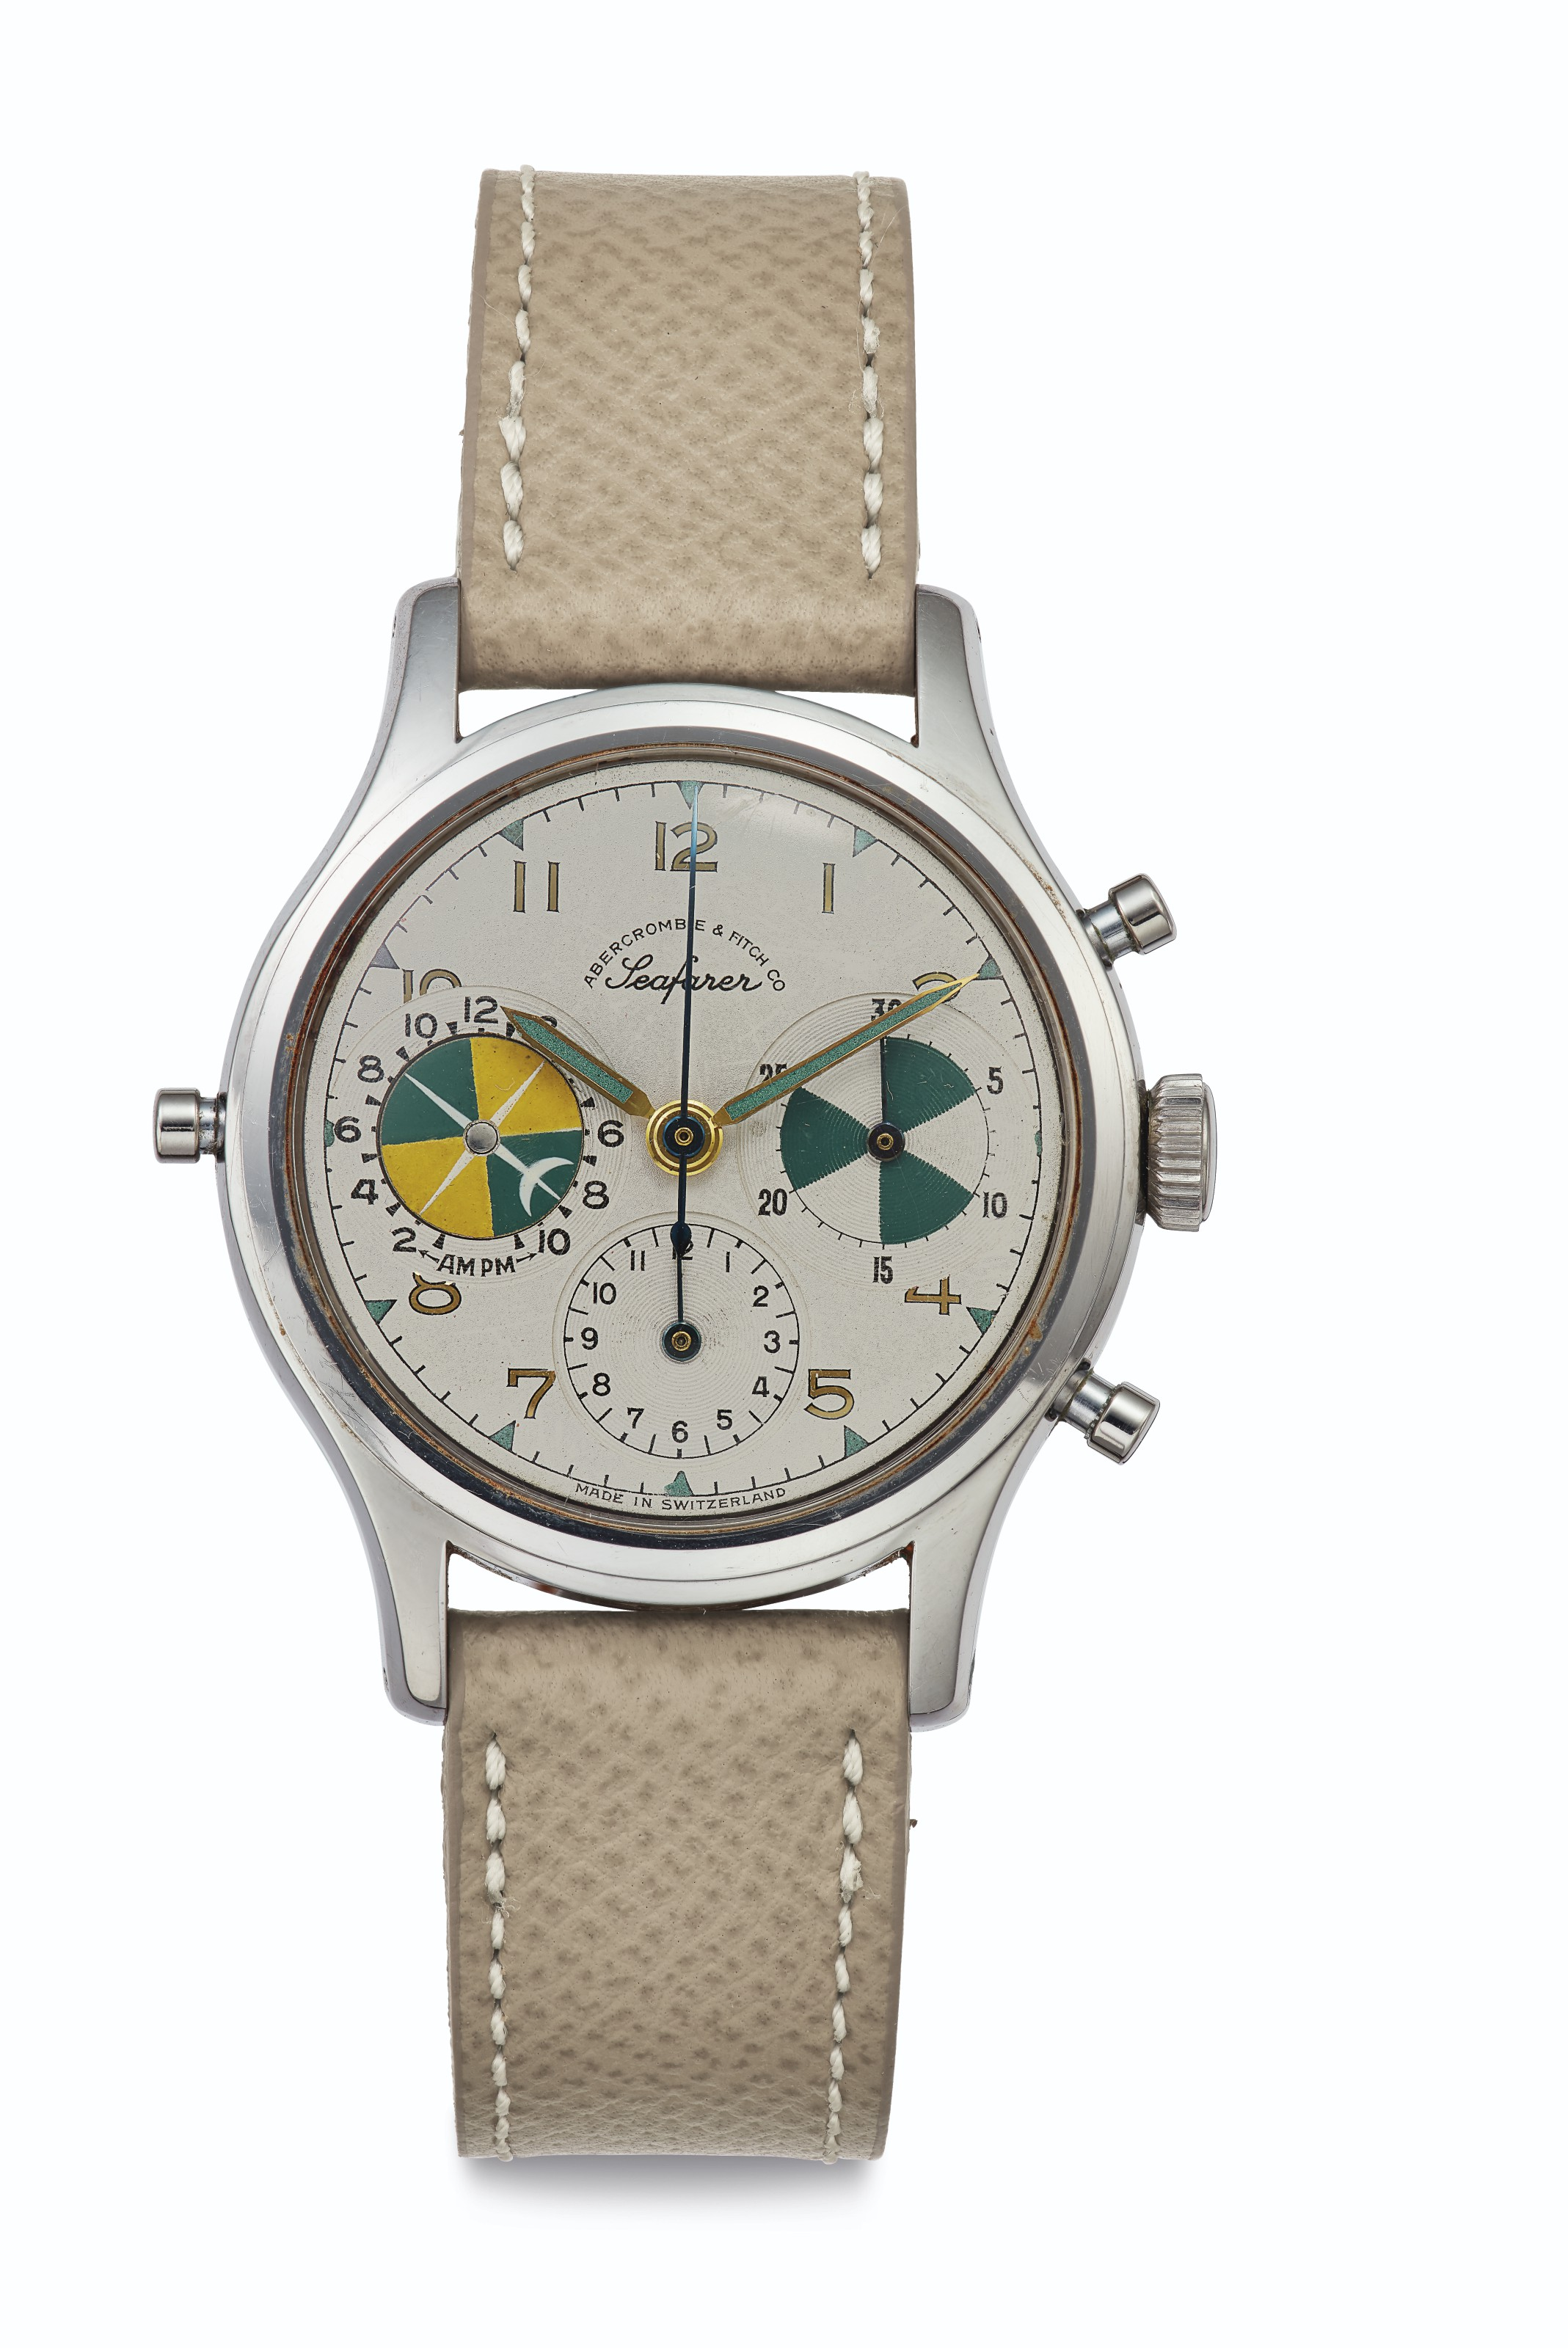 Heuer. A Fine Stainless Steel Chronograph Wristwatch with Tide Indication and Regatta Countdown